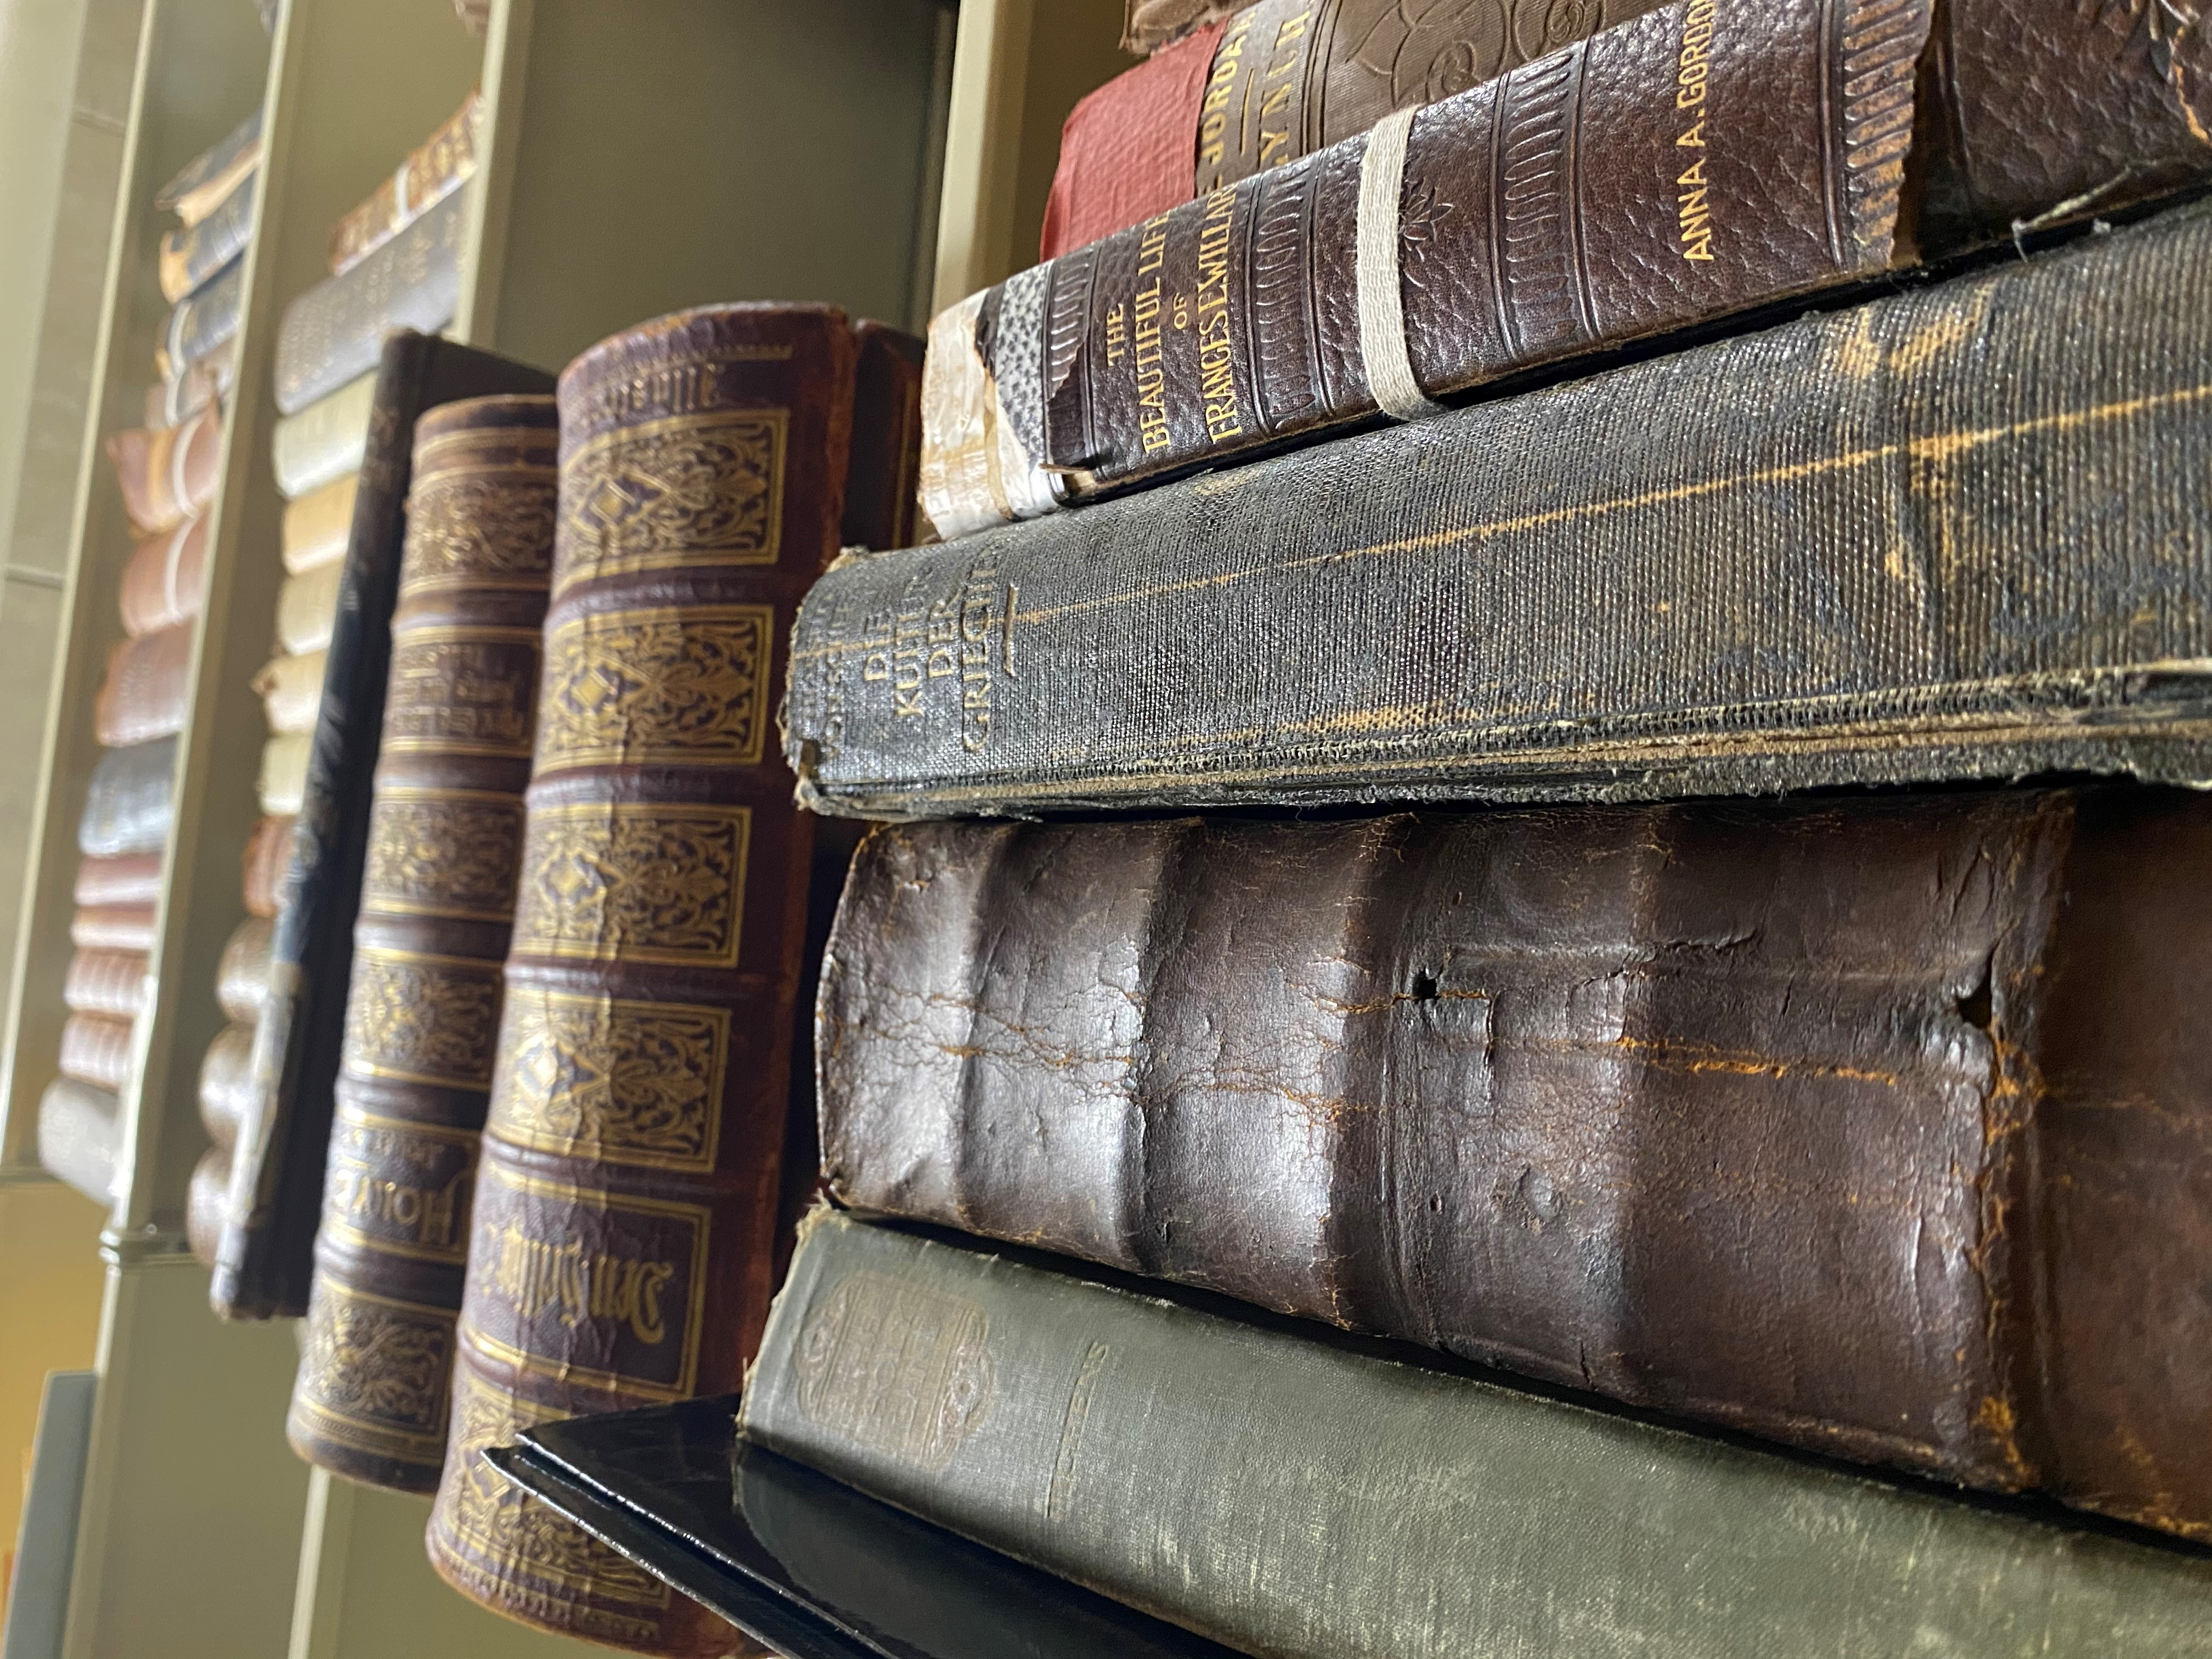 Rare books stored in the archives